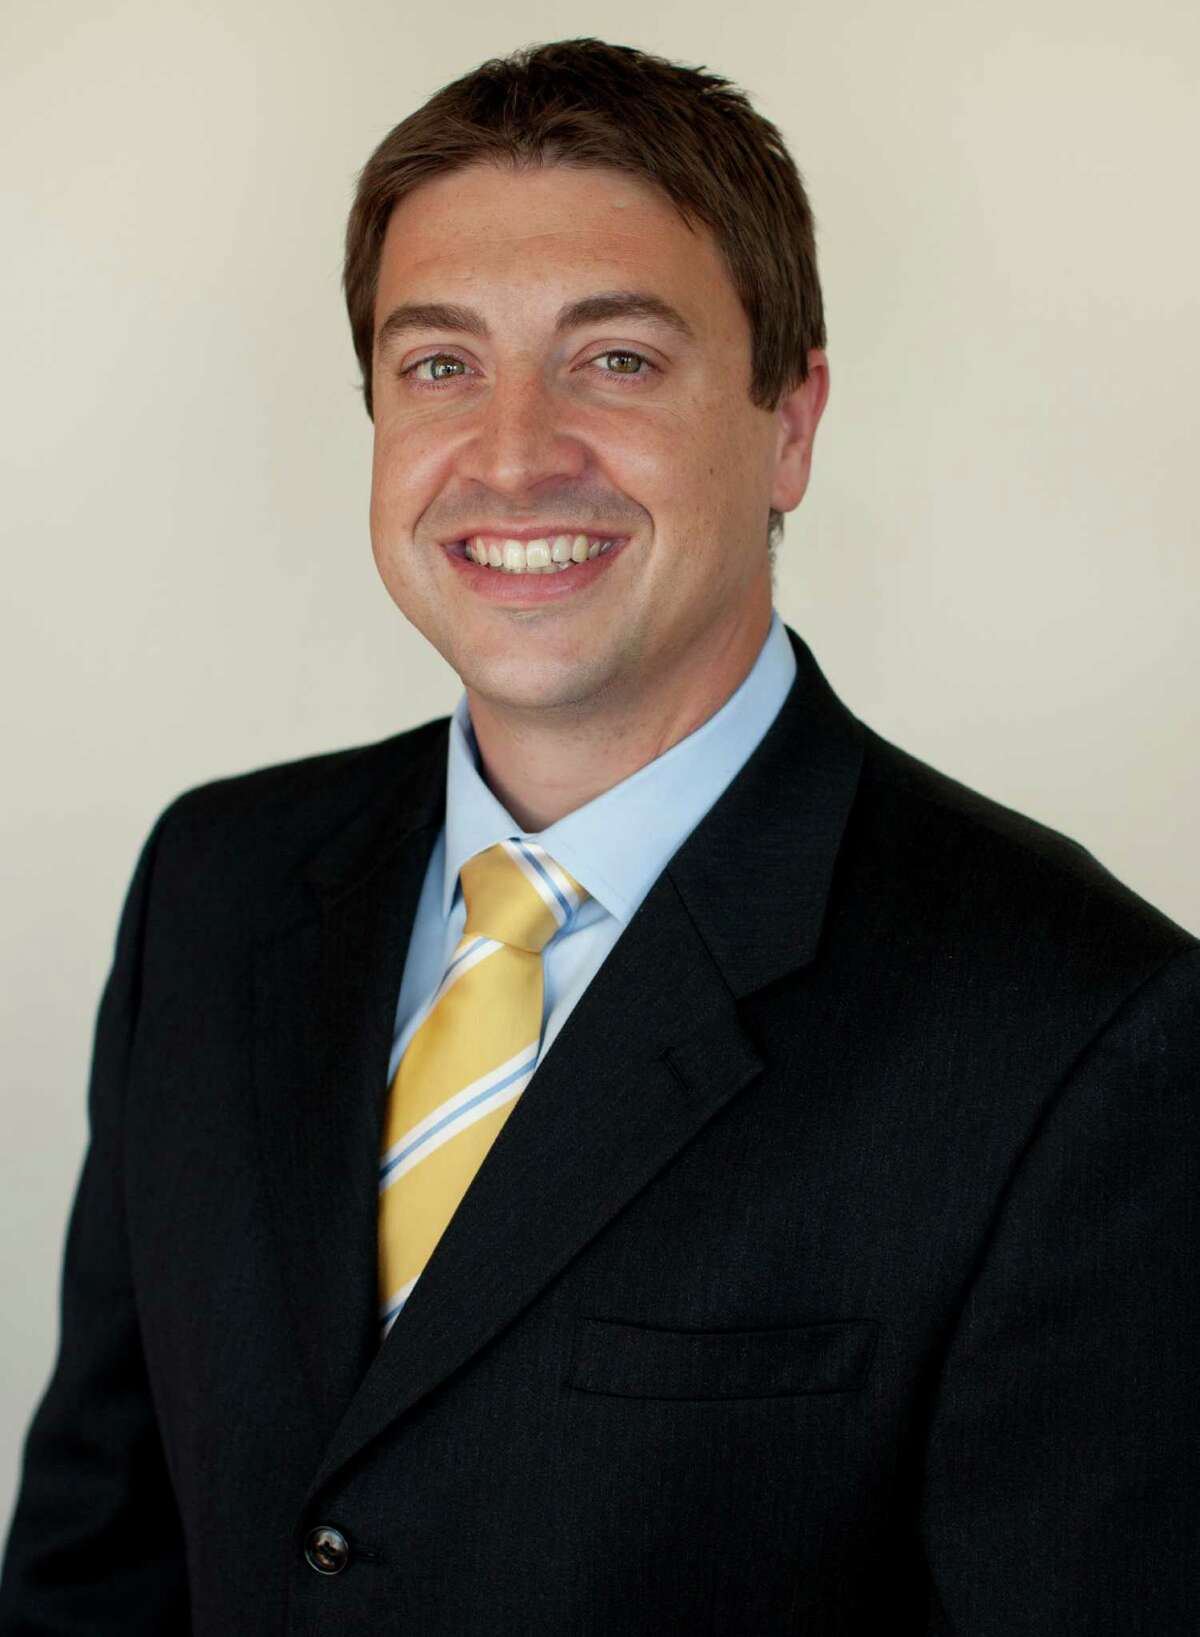 Sports medicine physician Dr. Christian Schupp recently had an article published in Current Sports Medicine Reports, the official journal of the American College of Sports Medicine.